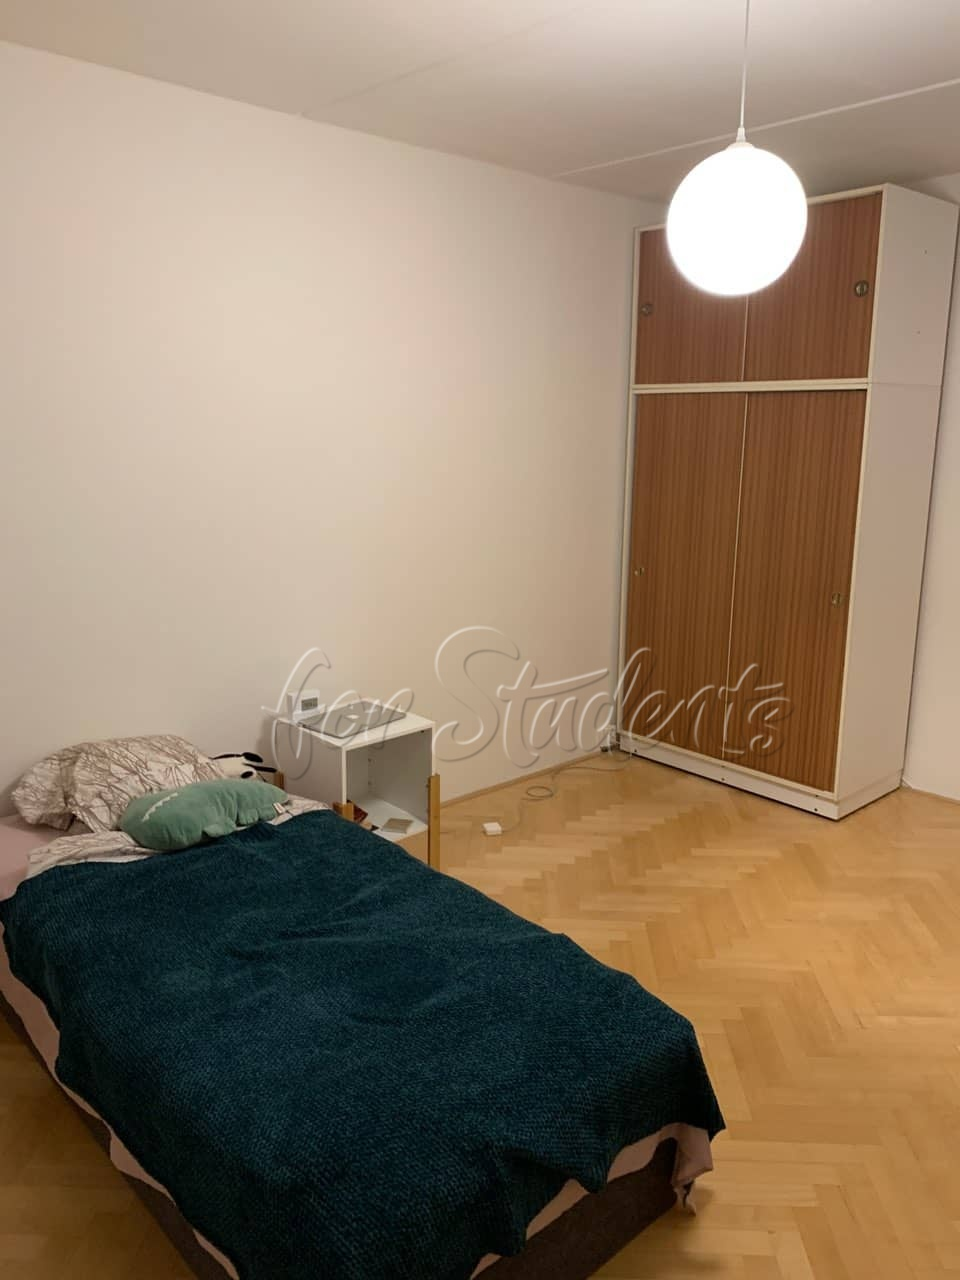 Spacious apartment in a nice, quiet area